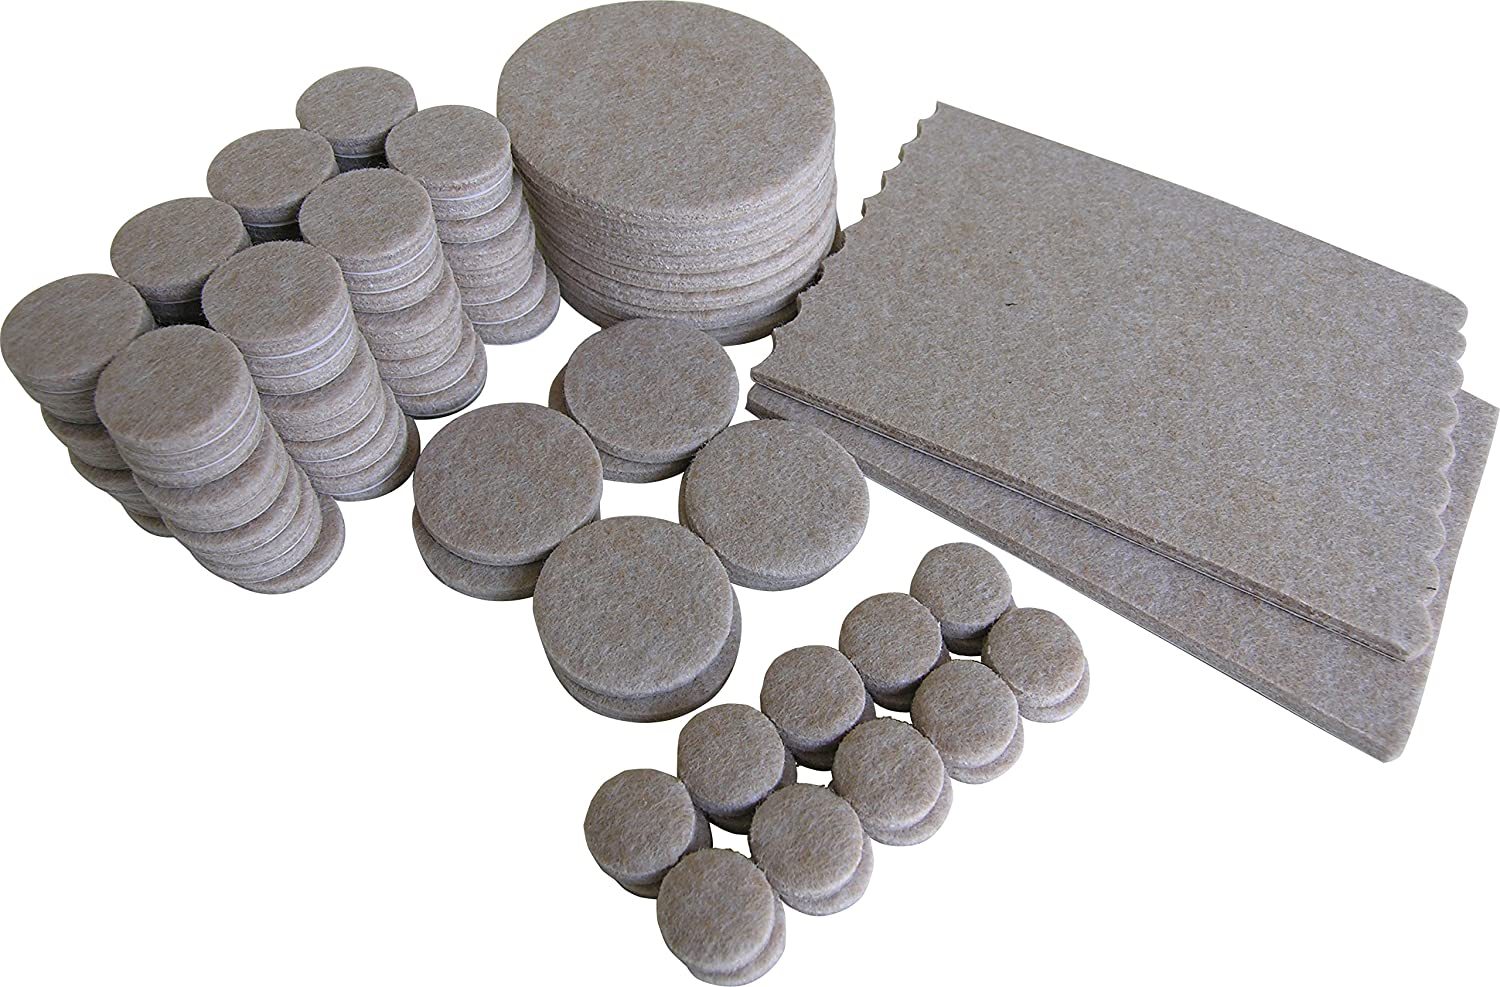 Shepherd Hardware 9839 Self-Adhesive Felt Furniture Pads, Assorted Sizes, 118-Pieces